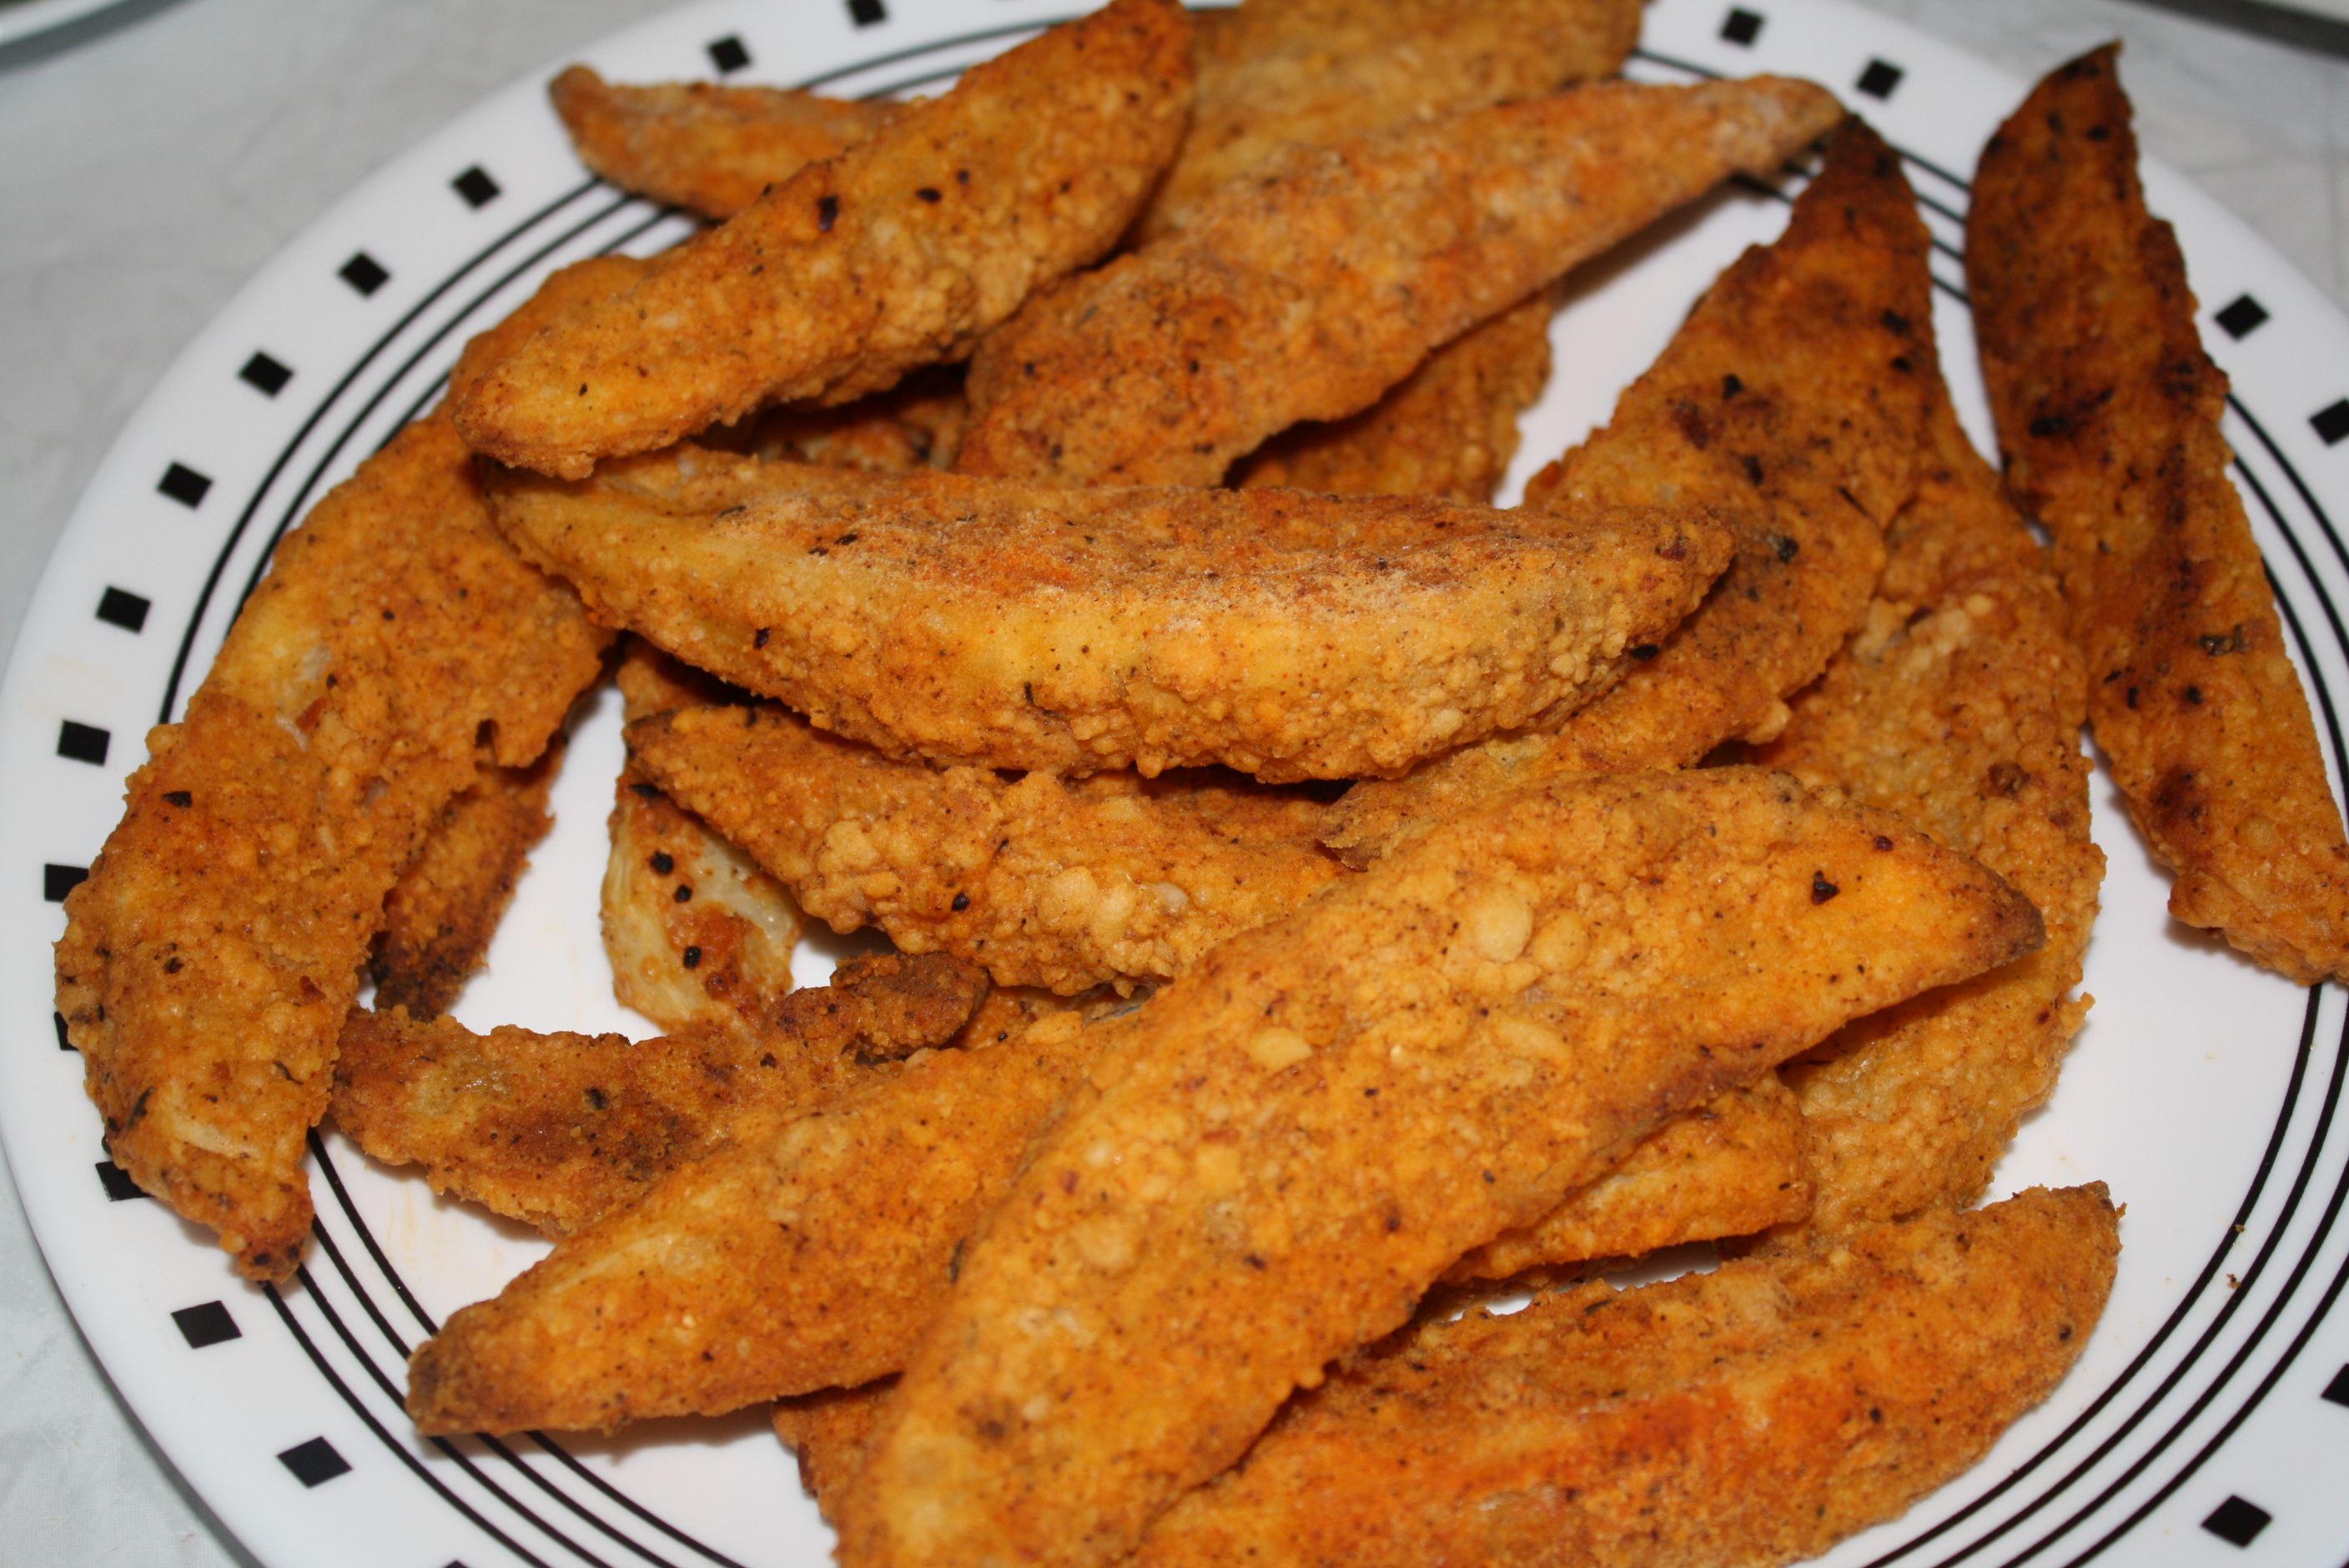 Potato Wedges | Baking JennFried Potato Wedges Kfc